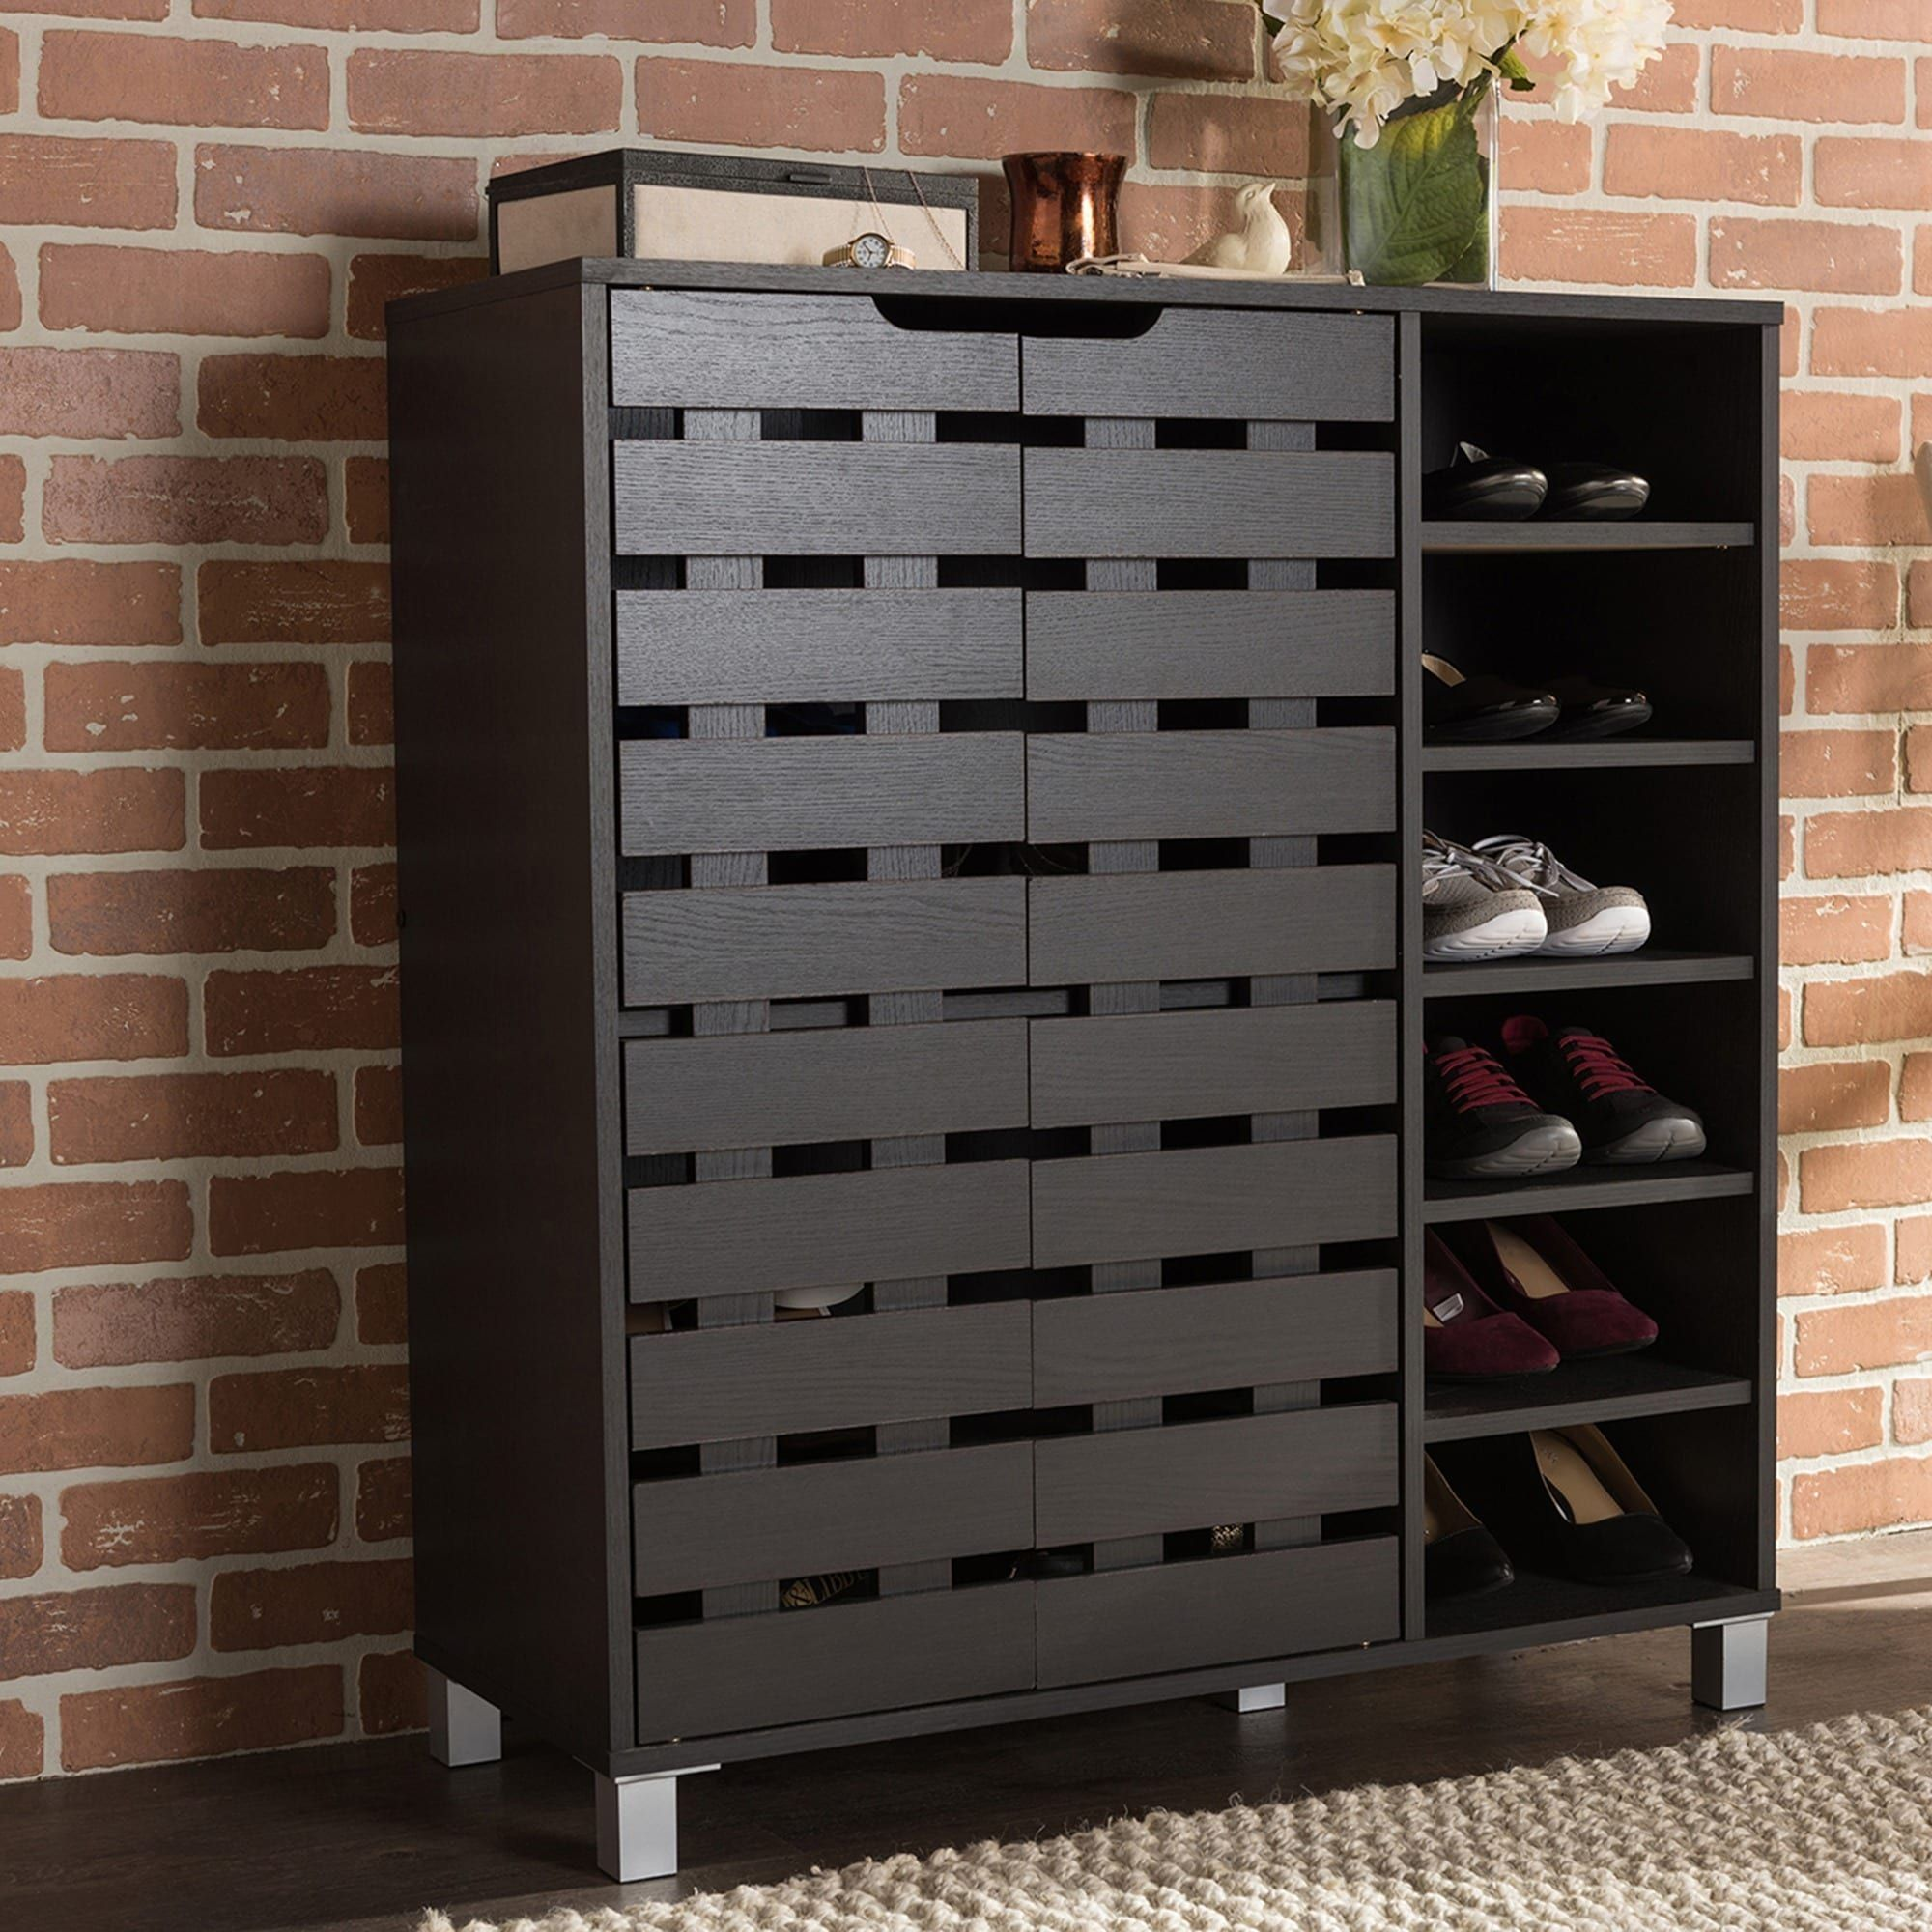 Baxton Studio Shirley Contemporary Wood Shoe Cabinet